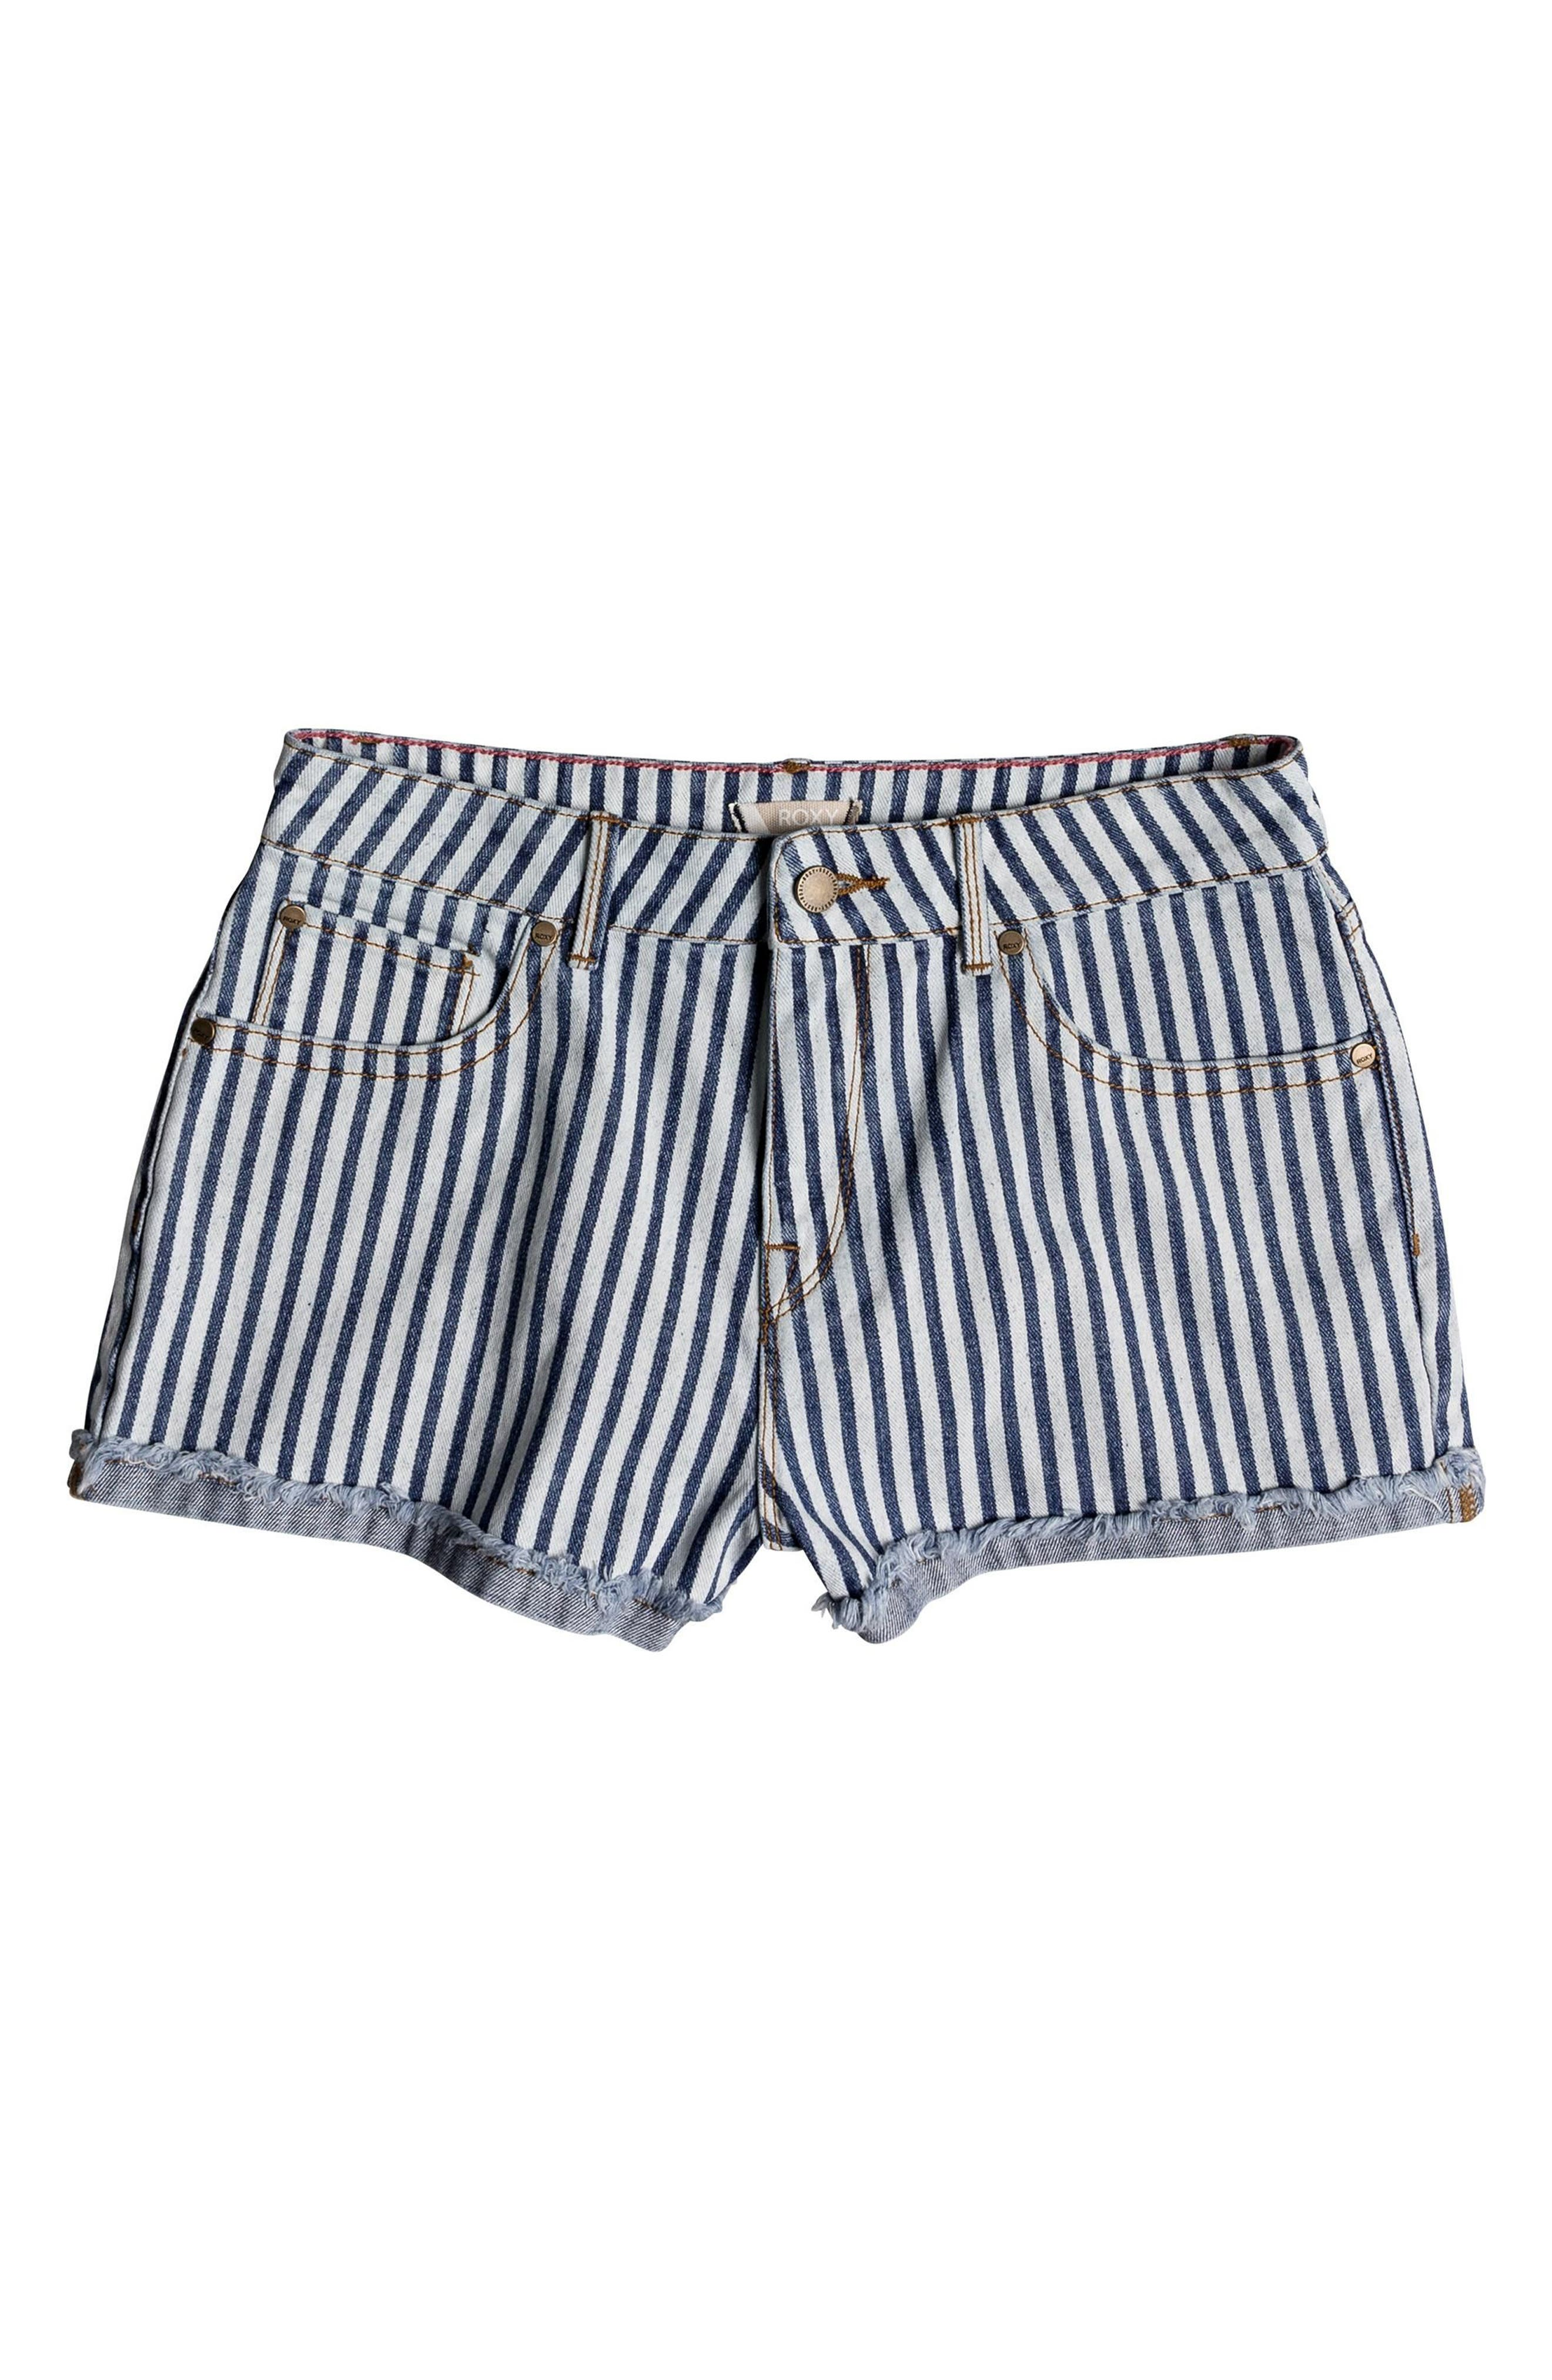 Holbrook Stripe Cotton Shorts,                             Alternate thumbnail 4, color,                             Medium Blue La Vague Stripe